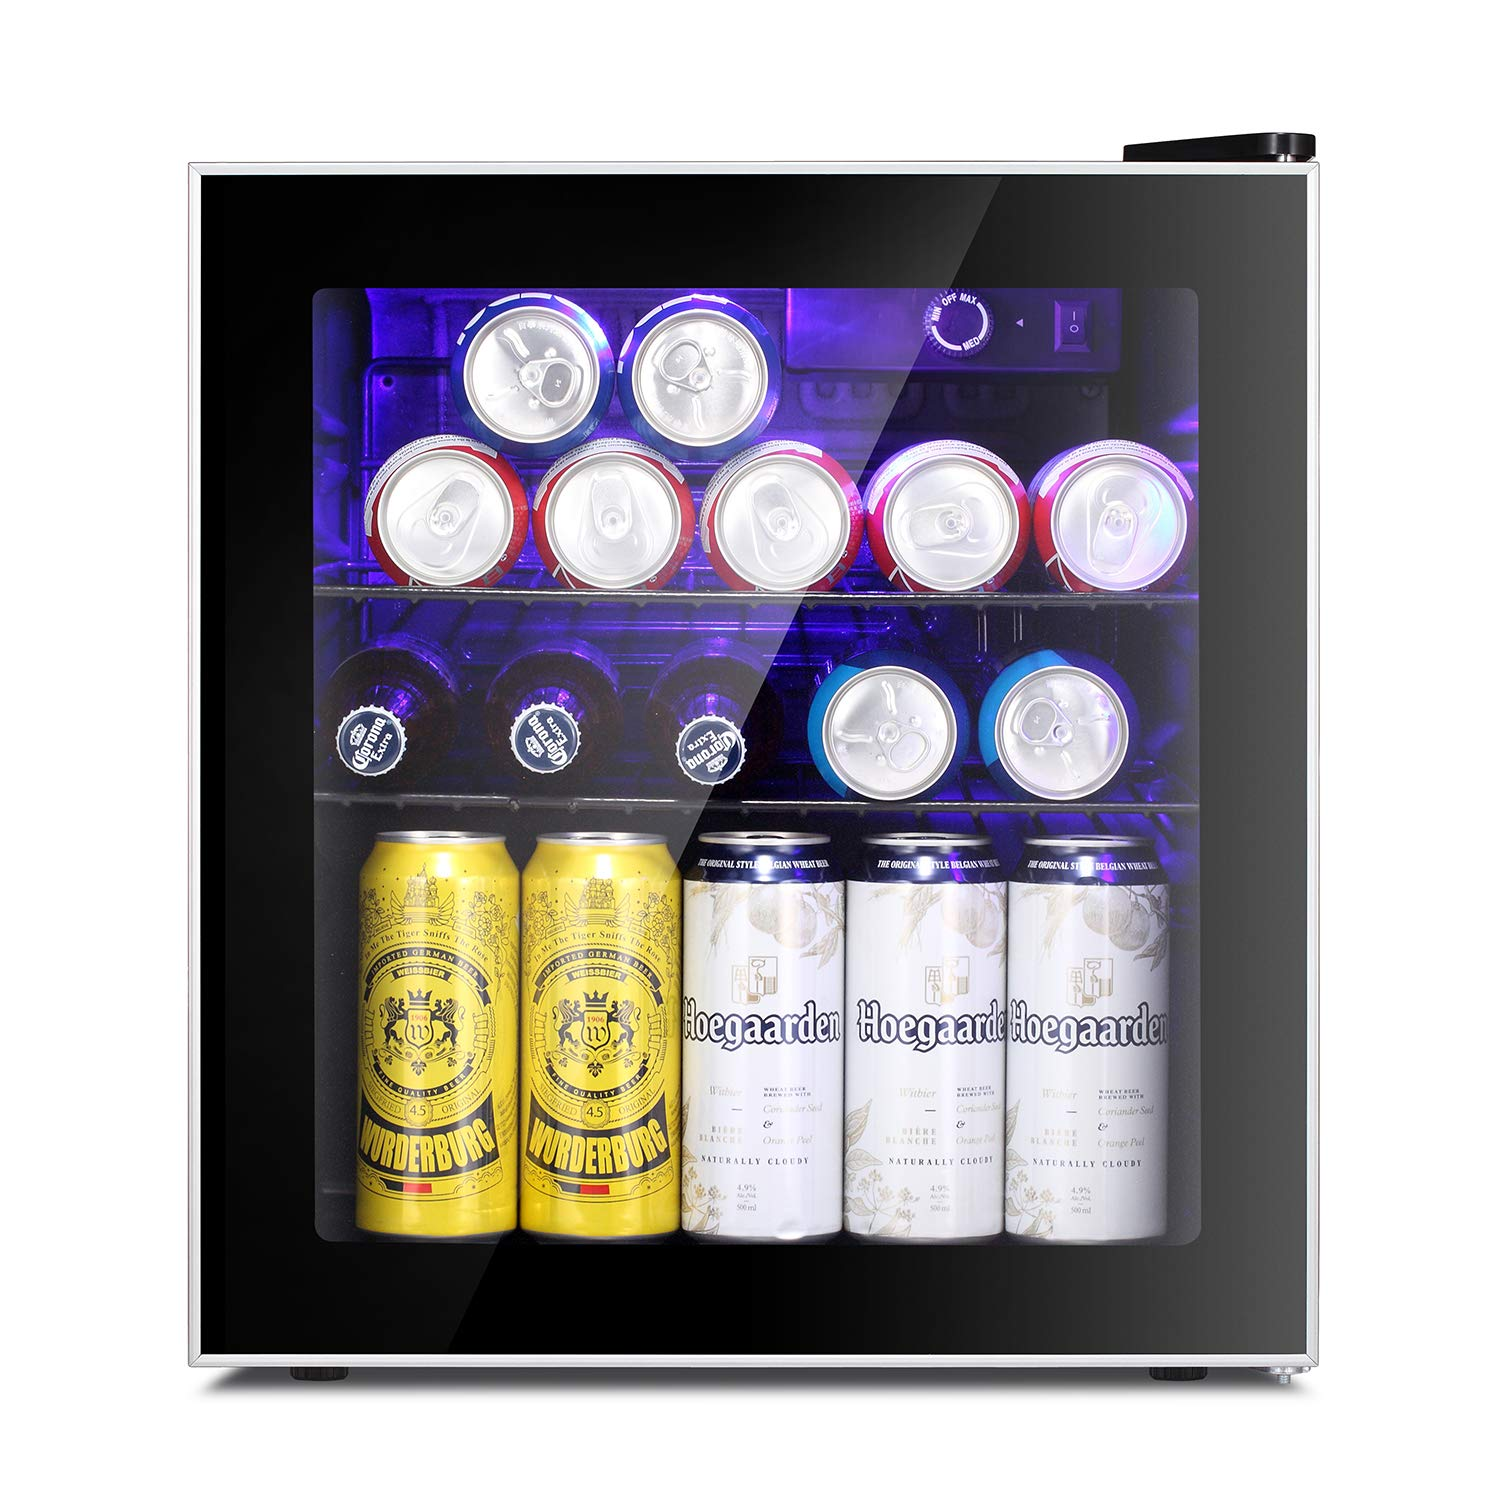 Antarctic Star Beverage Refrigerator Cooler - 60 Can Mini Fridge Glass Door for Soda Beer or Wine – Glass Door Small Drink Dispenser Machine Adjustable Removable for Home, Office or Bar, 1.6cu.ft.